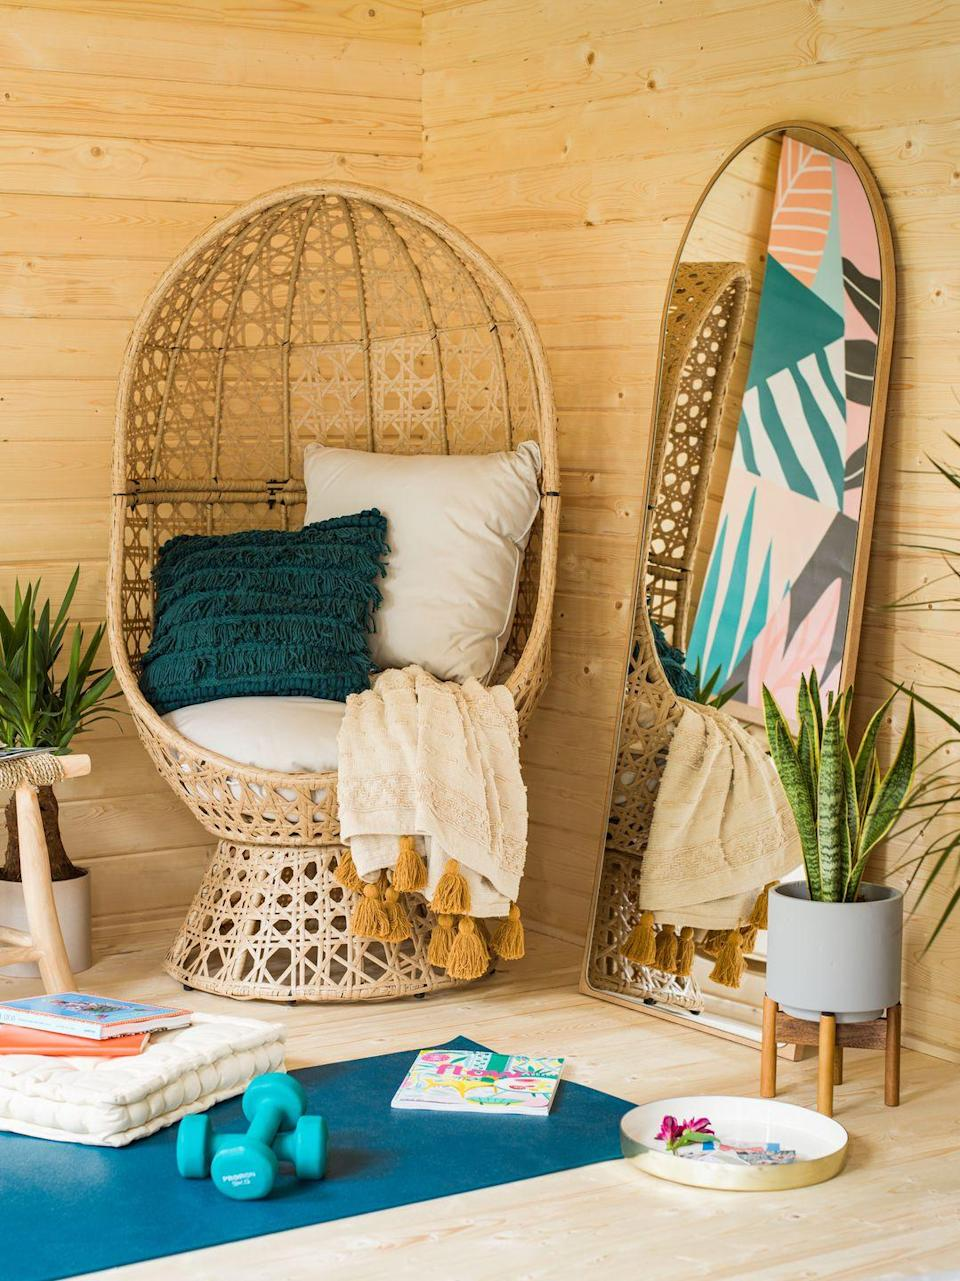 """<p>AJ loves the calming nature of the summer house, especially the cosy 'wellness corner' where she's able to relax in the statement rattan balloon chair, which she says is her favourite piece of furniture. </p><p>A <a href=""""https://go.redirectingat.com?id=127X1599956&url=https%3A%2F%2Fwww.wayfair.co.uk%2Fhome-decor%2Fpdp%2Fbrayden-studio-crewkerne-full-length-mirror-u000981097.html&sref=https%3A%2F%2Fwww.housebeautiful.com%2Fuk%2Fgarden%2Fg36462362%2Faj-odudu-garden-summer-house%2F"""" rel=""""nofollow noopener"""" target=""""_blank"""" data-ylk=""""slk:full-length mirror"""" class=""""link rapid-noclick-resp"""">full-length mirror</a> leaning against the wall makes the space look bigger and brighter by reflecting the sunlight streaming in through the floor-to-ceiling windows. <br></p>"""